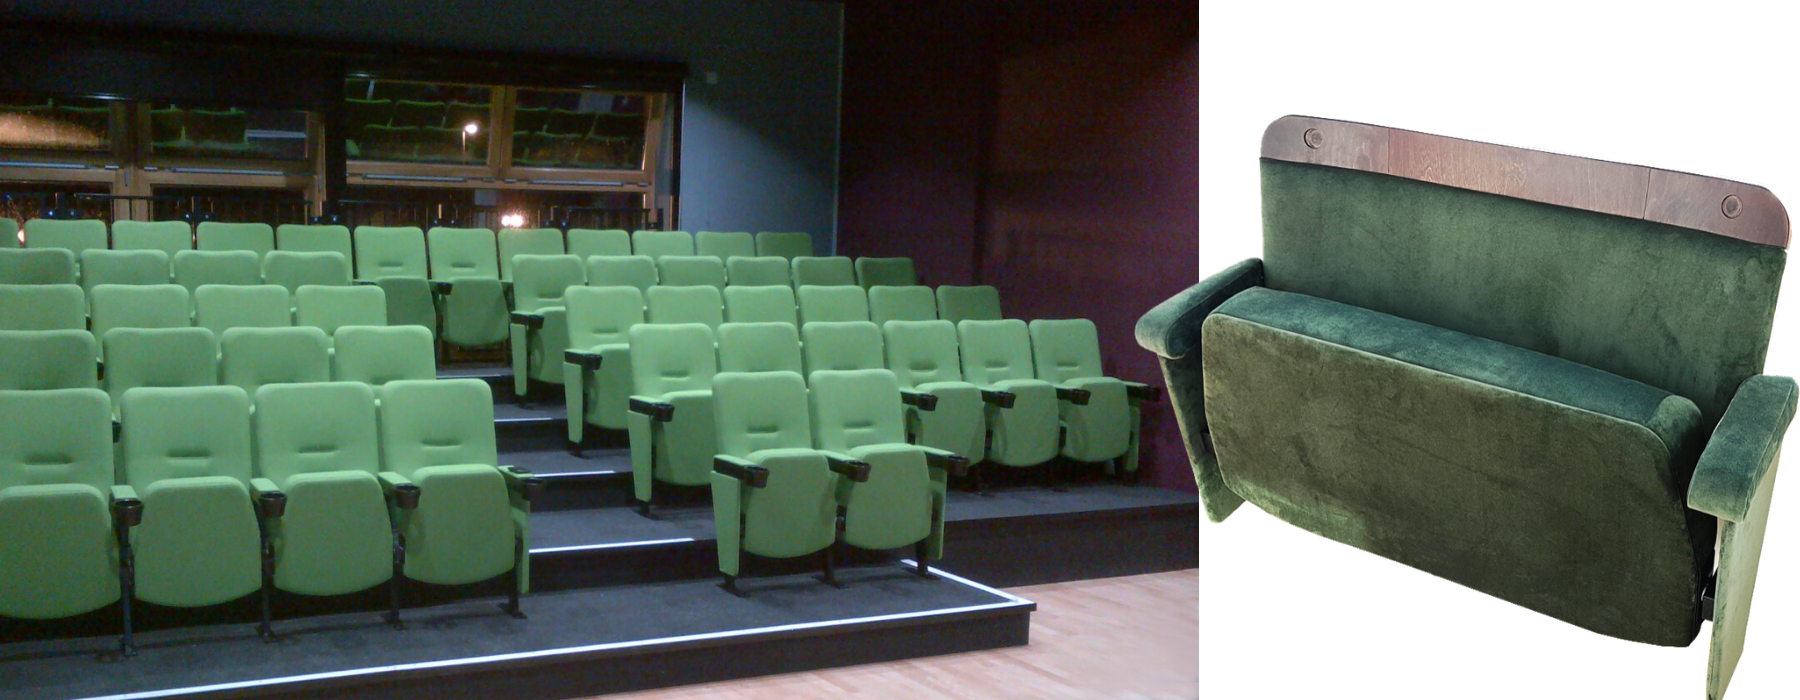 Green fabric colour for fixed seating shown in a small cinema auditorium and on an individual love seat